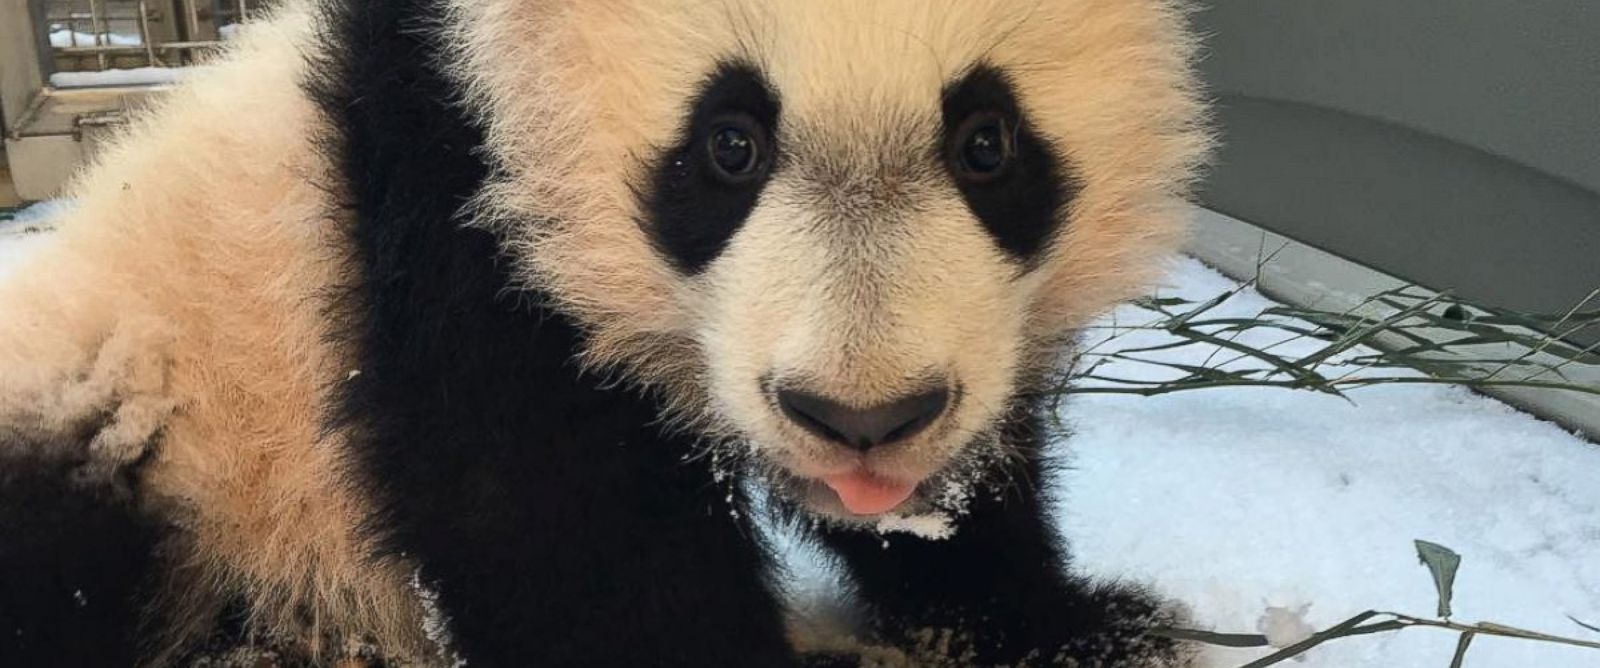 """PHOTO: The Smithsonian Zoo posted this photo on Instagram with the caption, """"BeiBei had his first introduction to snow today! He wasnt quite sure what to make of the powdery snow and made his way back inside quickly,"""" on Jan. 21, 2016 in Washington."""